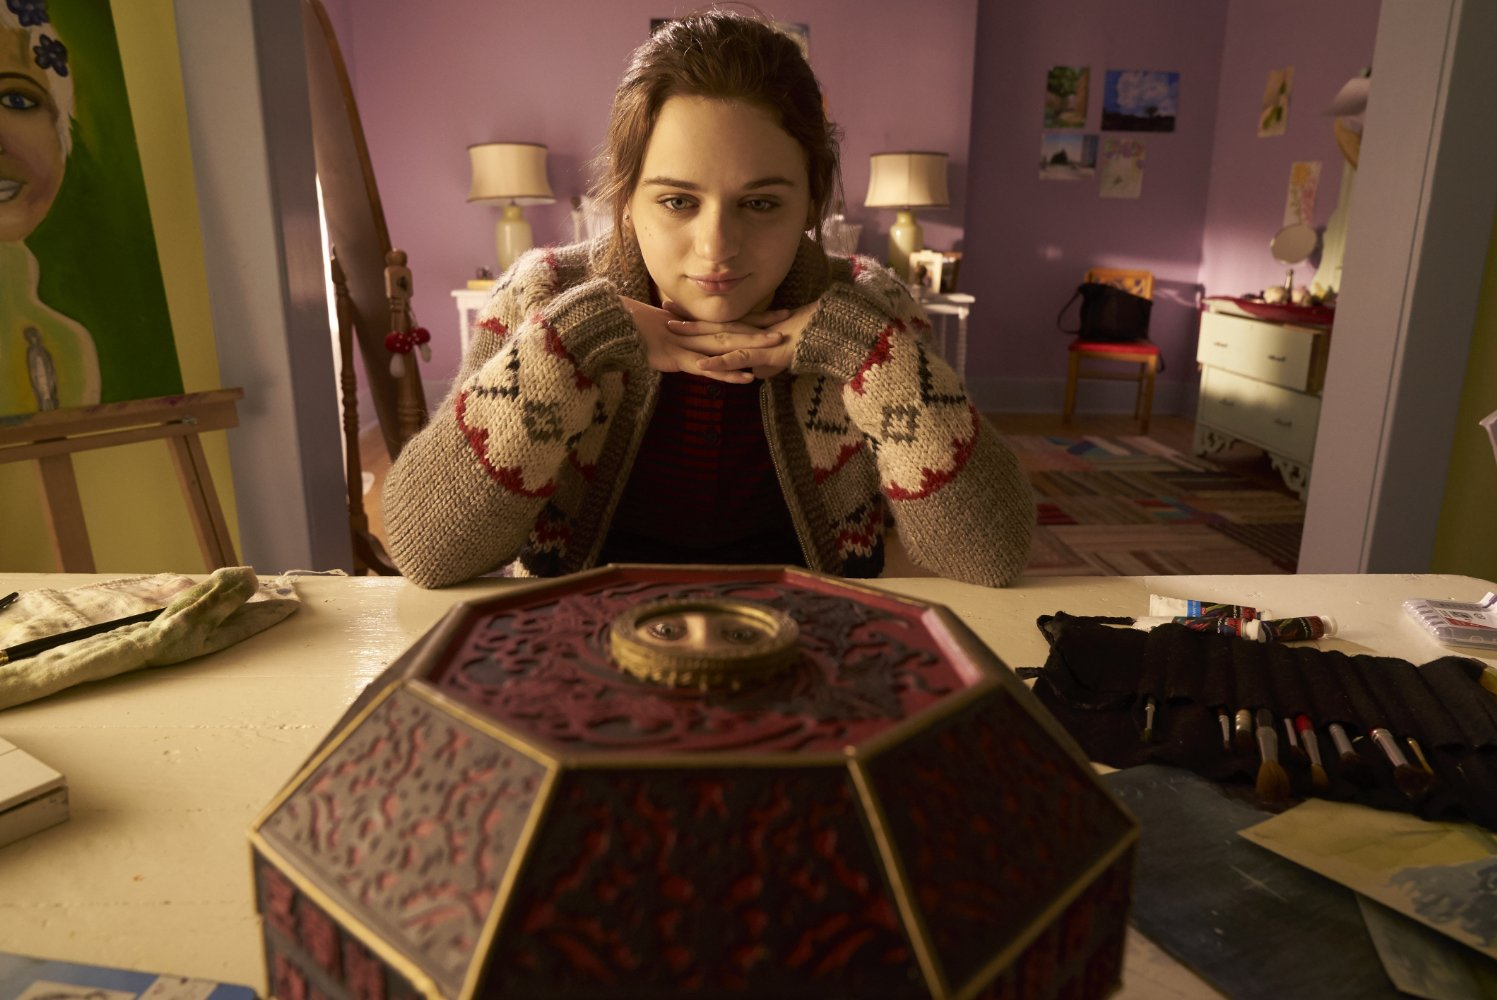 Wish Upon, Horror Movie, Ryan Phillippe, Joey King, Movie Review, Rawlins GLAM, byrawlins